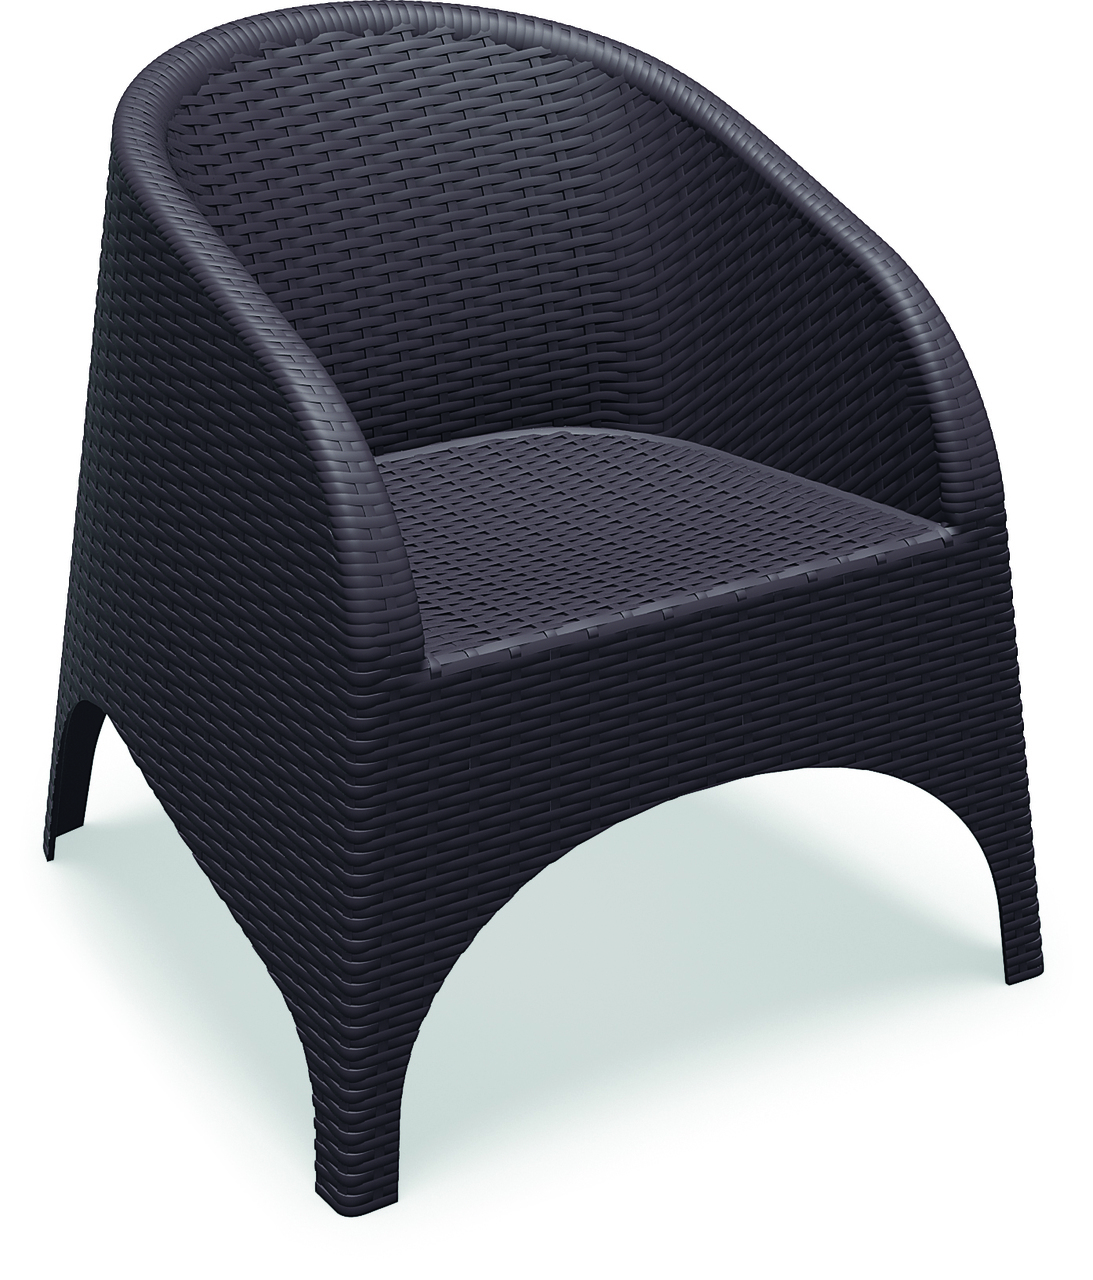 Compamia Isp Br Aruba Resin Wickerlook Chair Pack Of Image 141